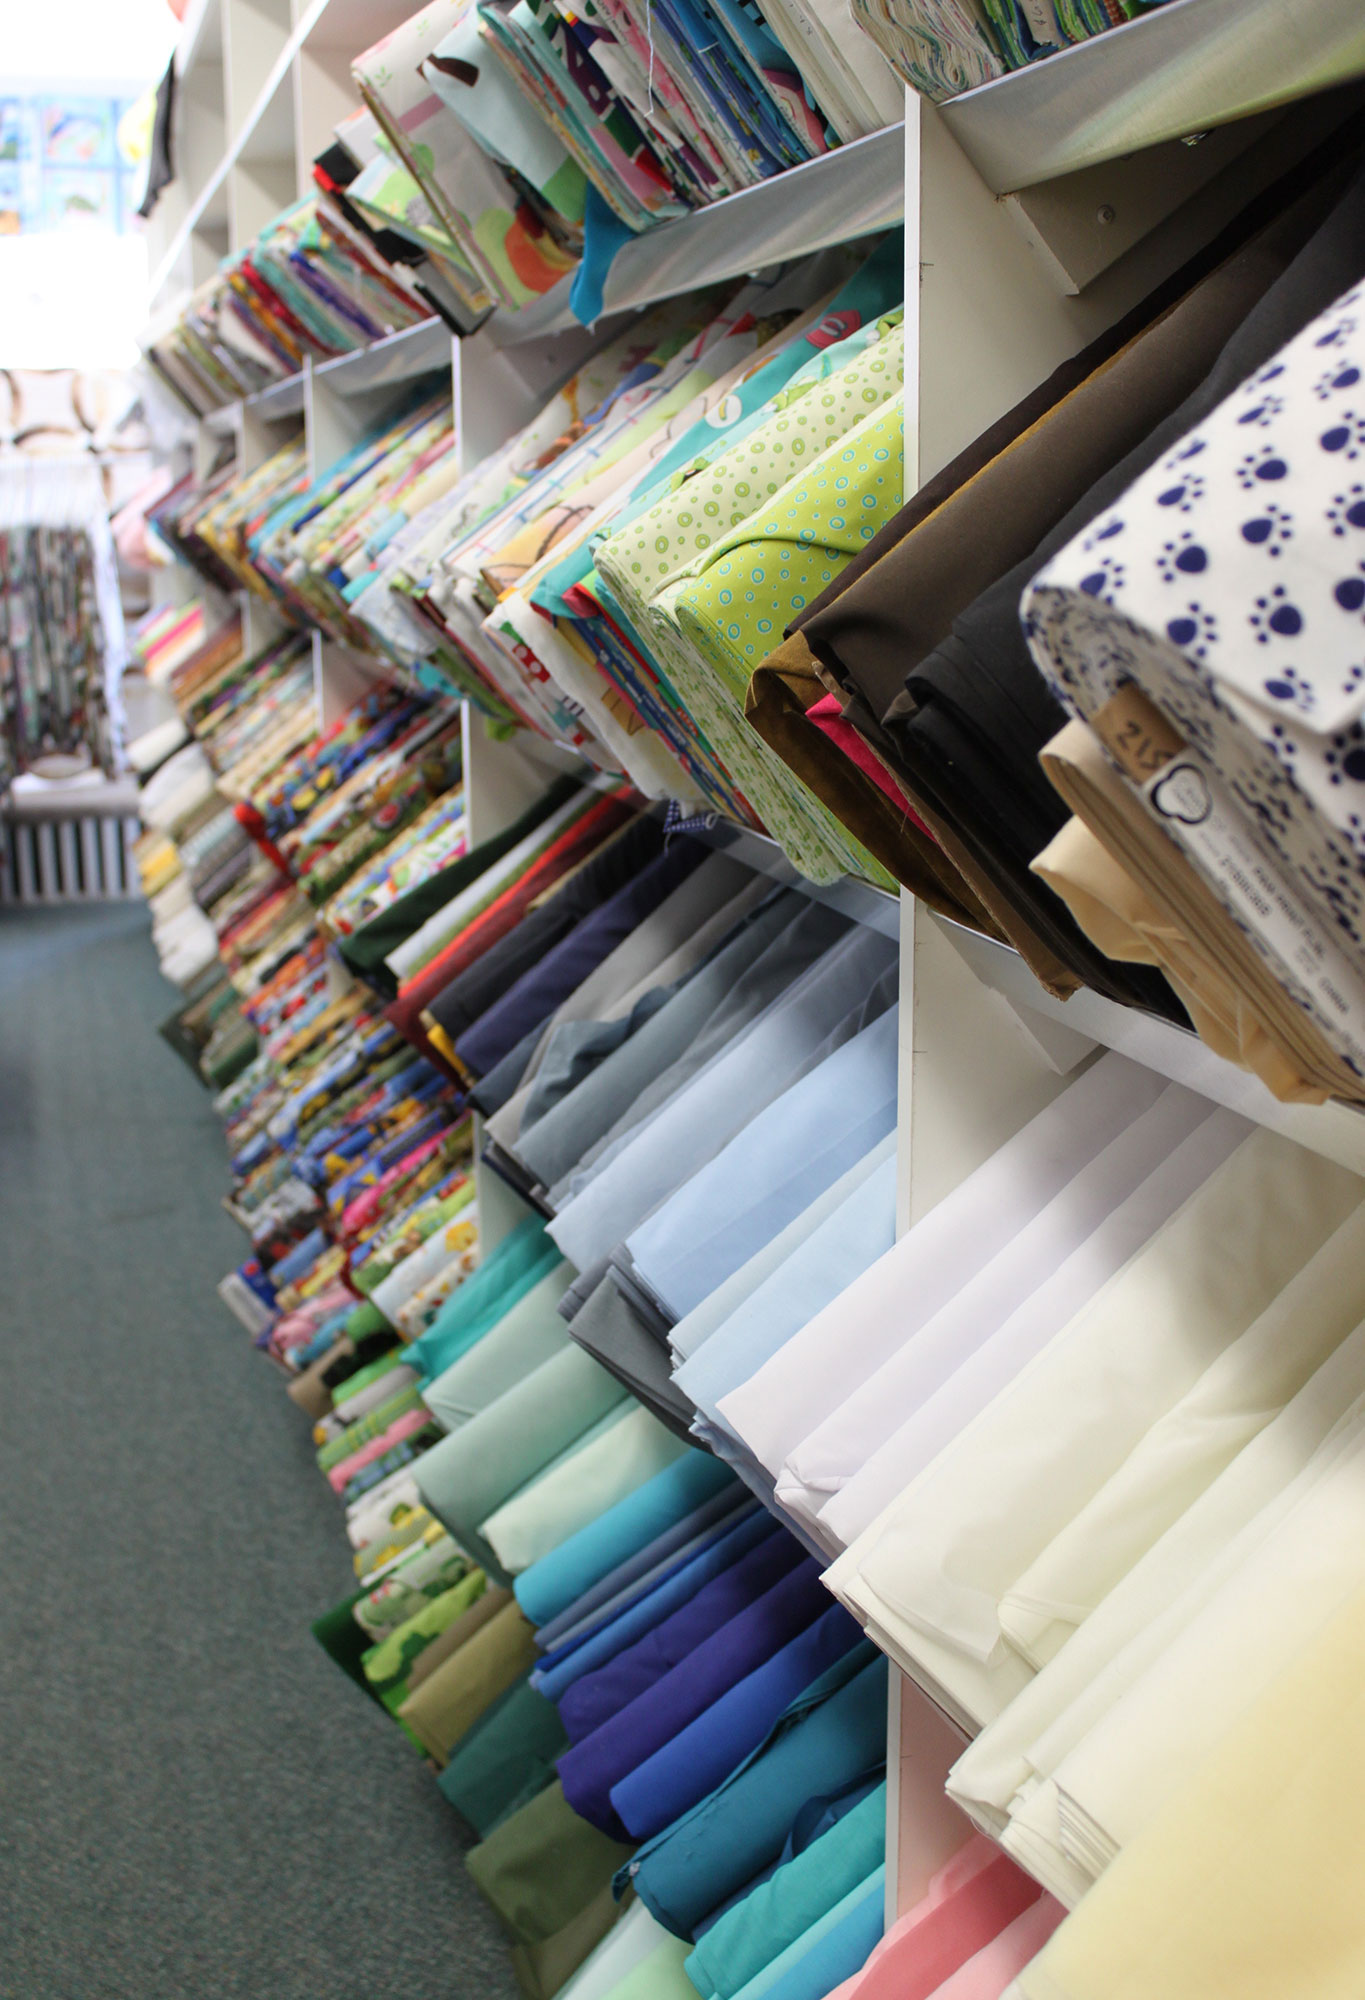 fabric-shelves.jpg